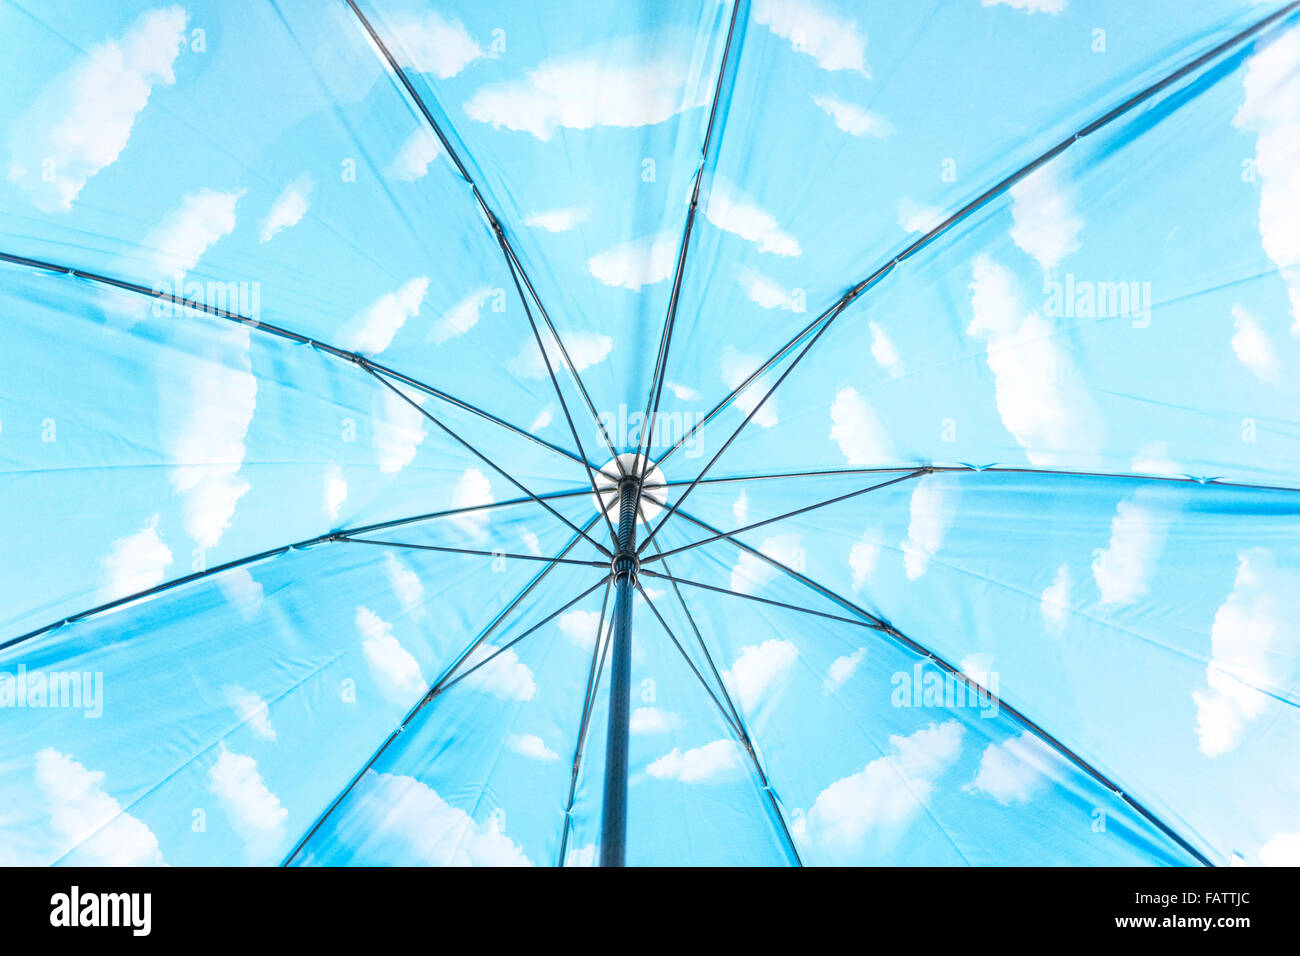 Inside of an Umbrella with White Clouds in a Blue Sky. A reference to Magritte or optimism and positive thinking. - Stock Image